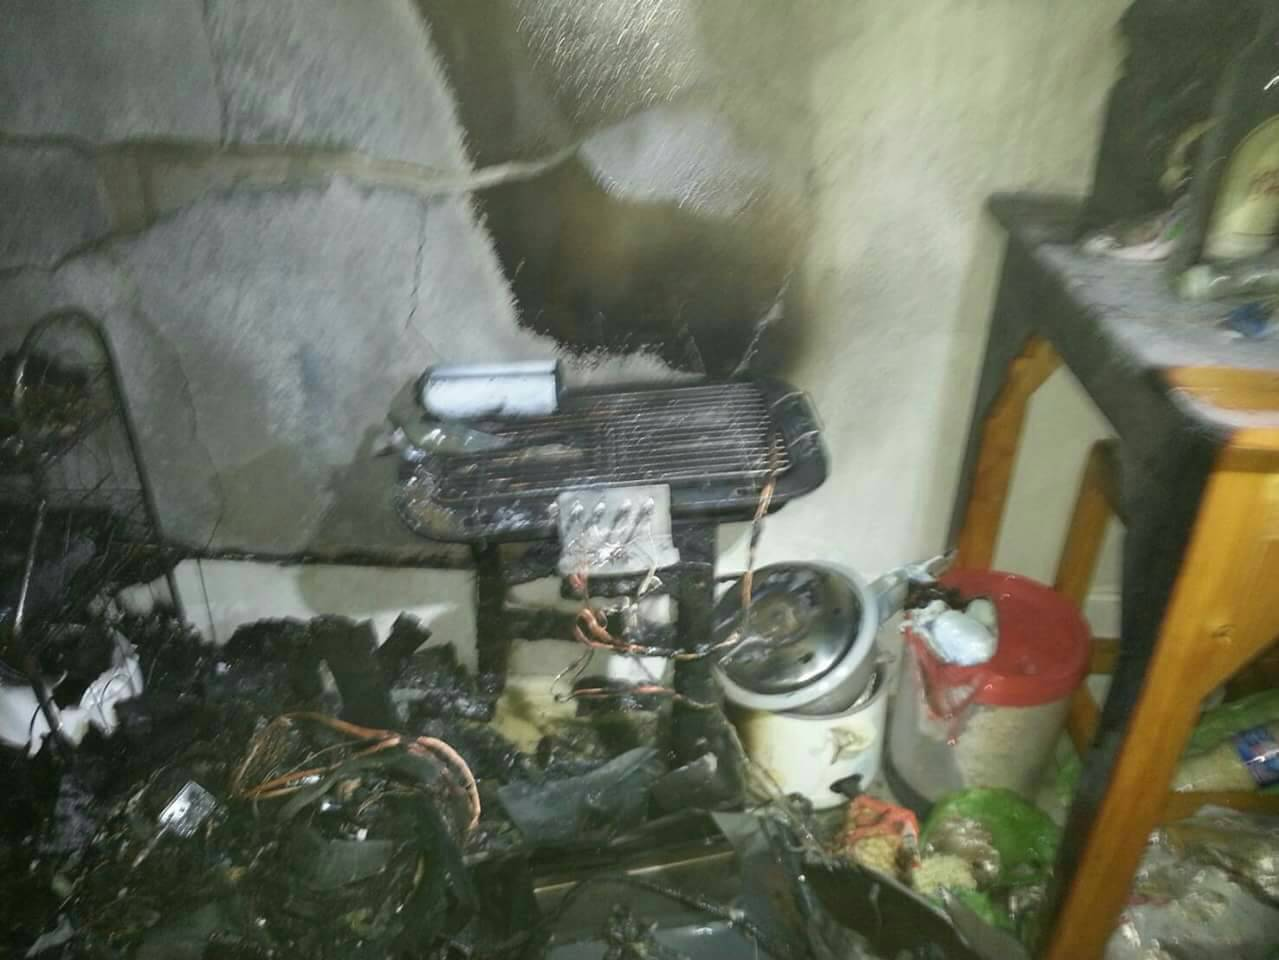 Fire damaged a central Pattaya apartment house after a tenant apparently forgot to turn off the grill.